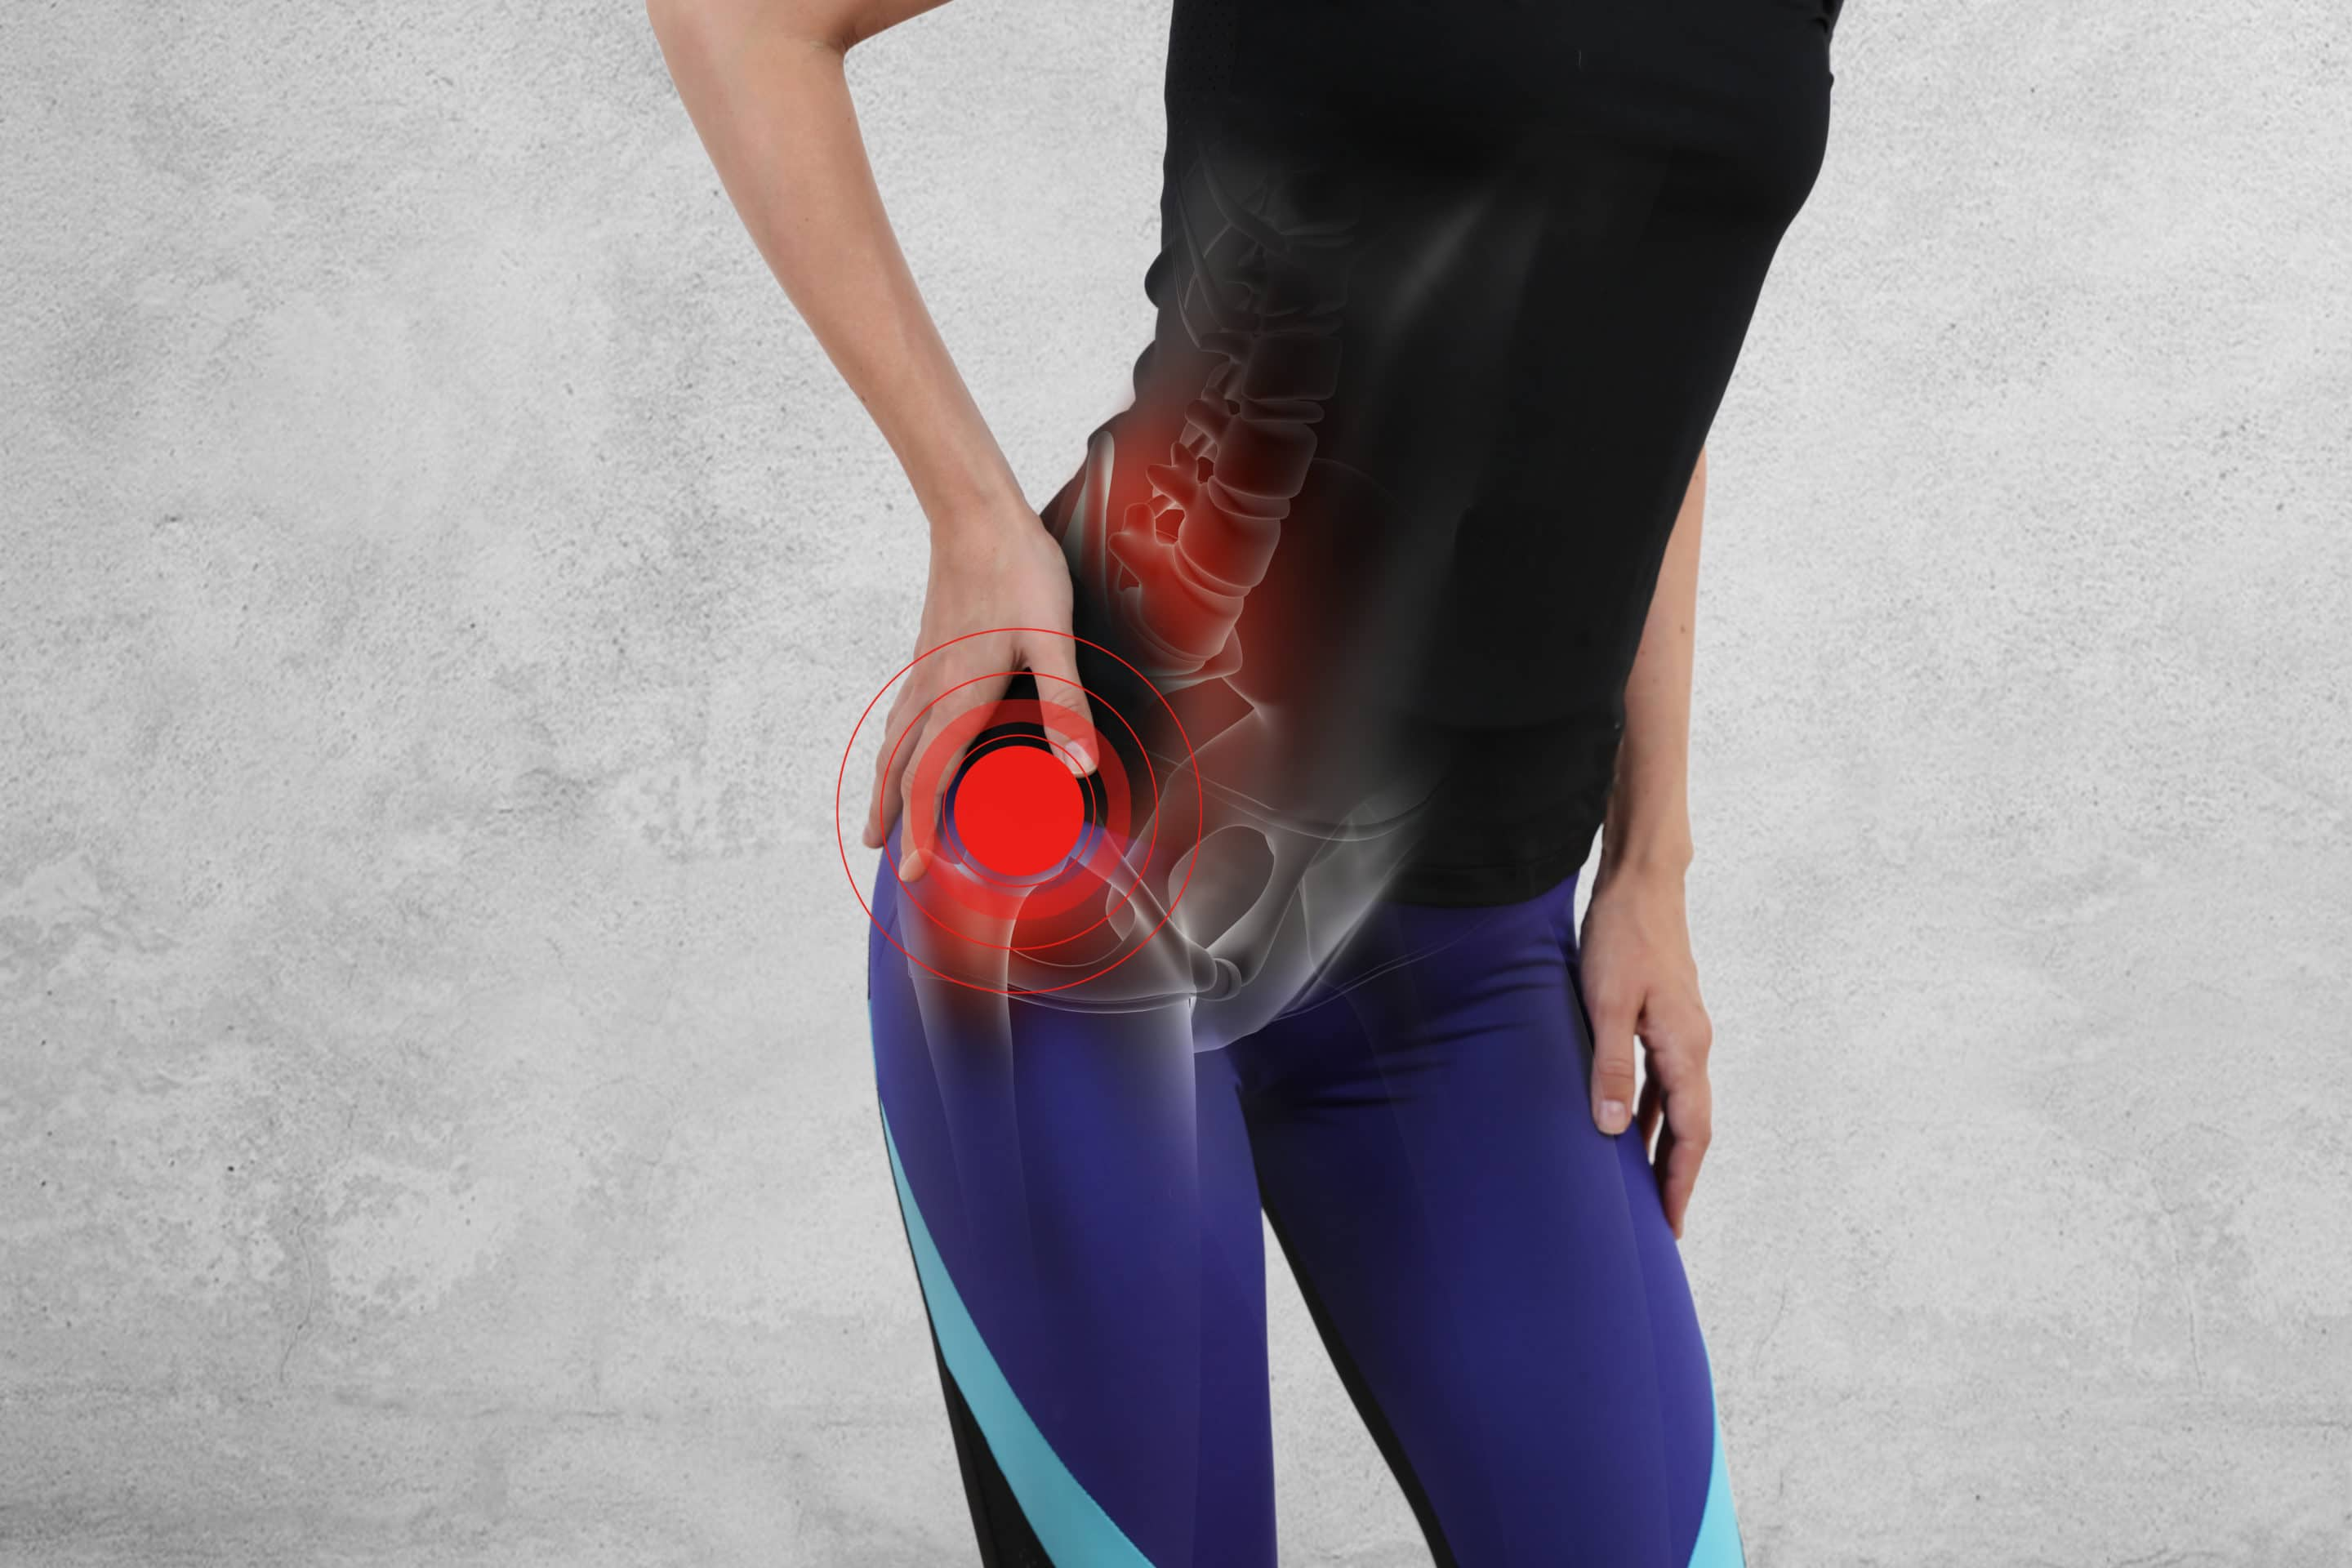 Knee, Hip, or Back Pain? Your Feet May Be at Fault